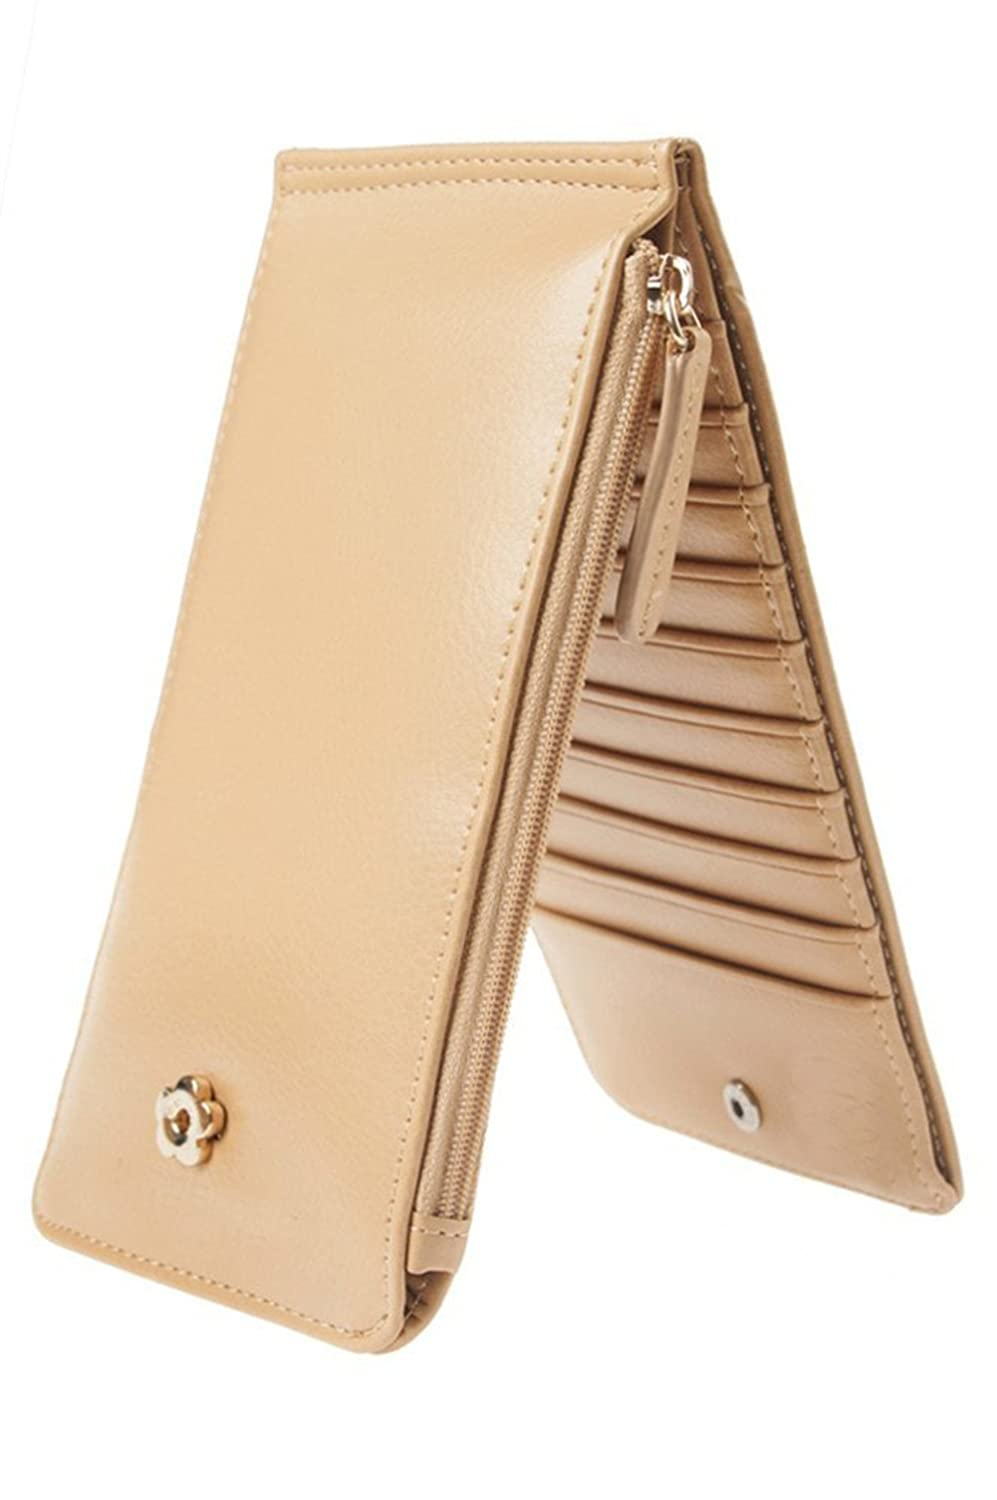 American Trends Womens Bifold Thin Card Holder Slim Wallet with Phone Pocket Pink ATACBS0956APAFS